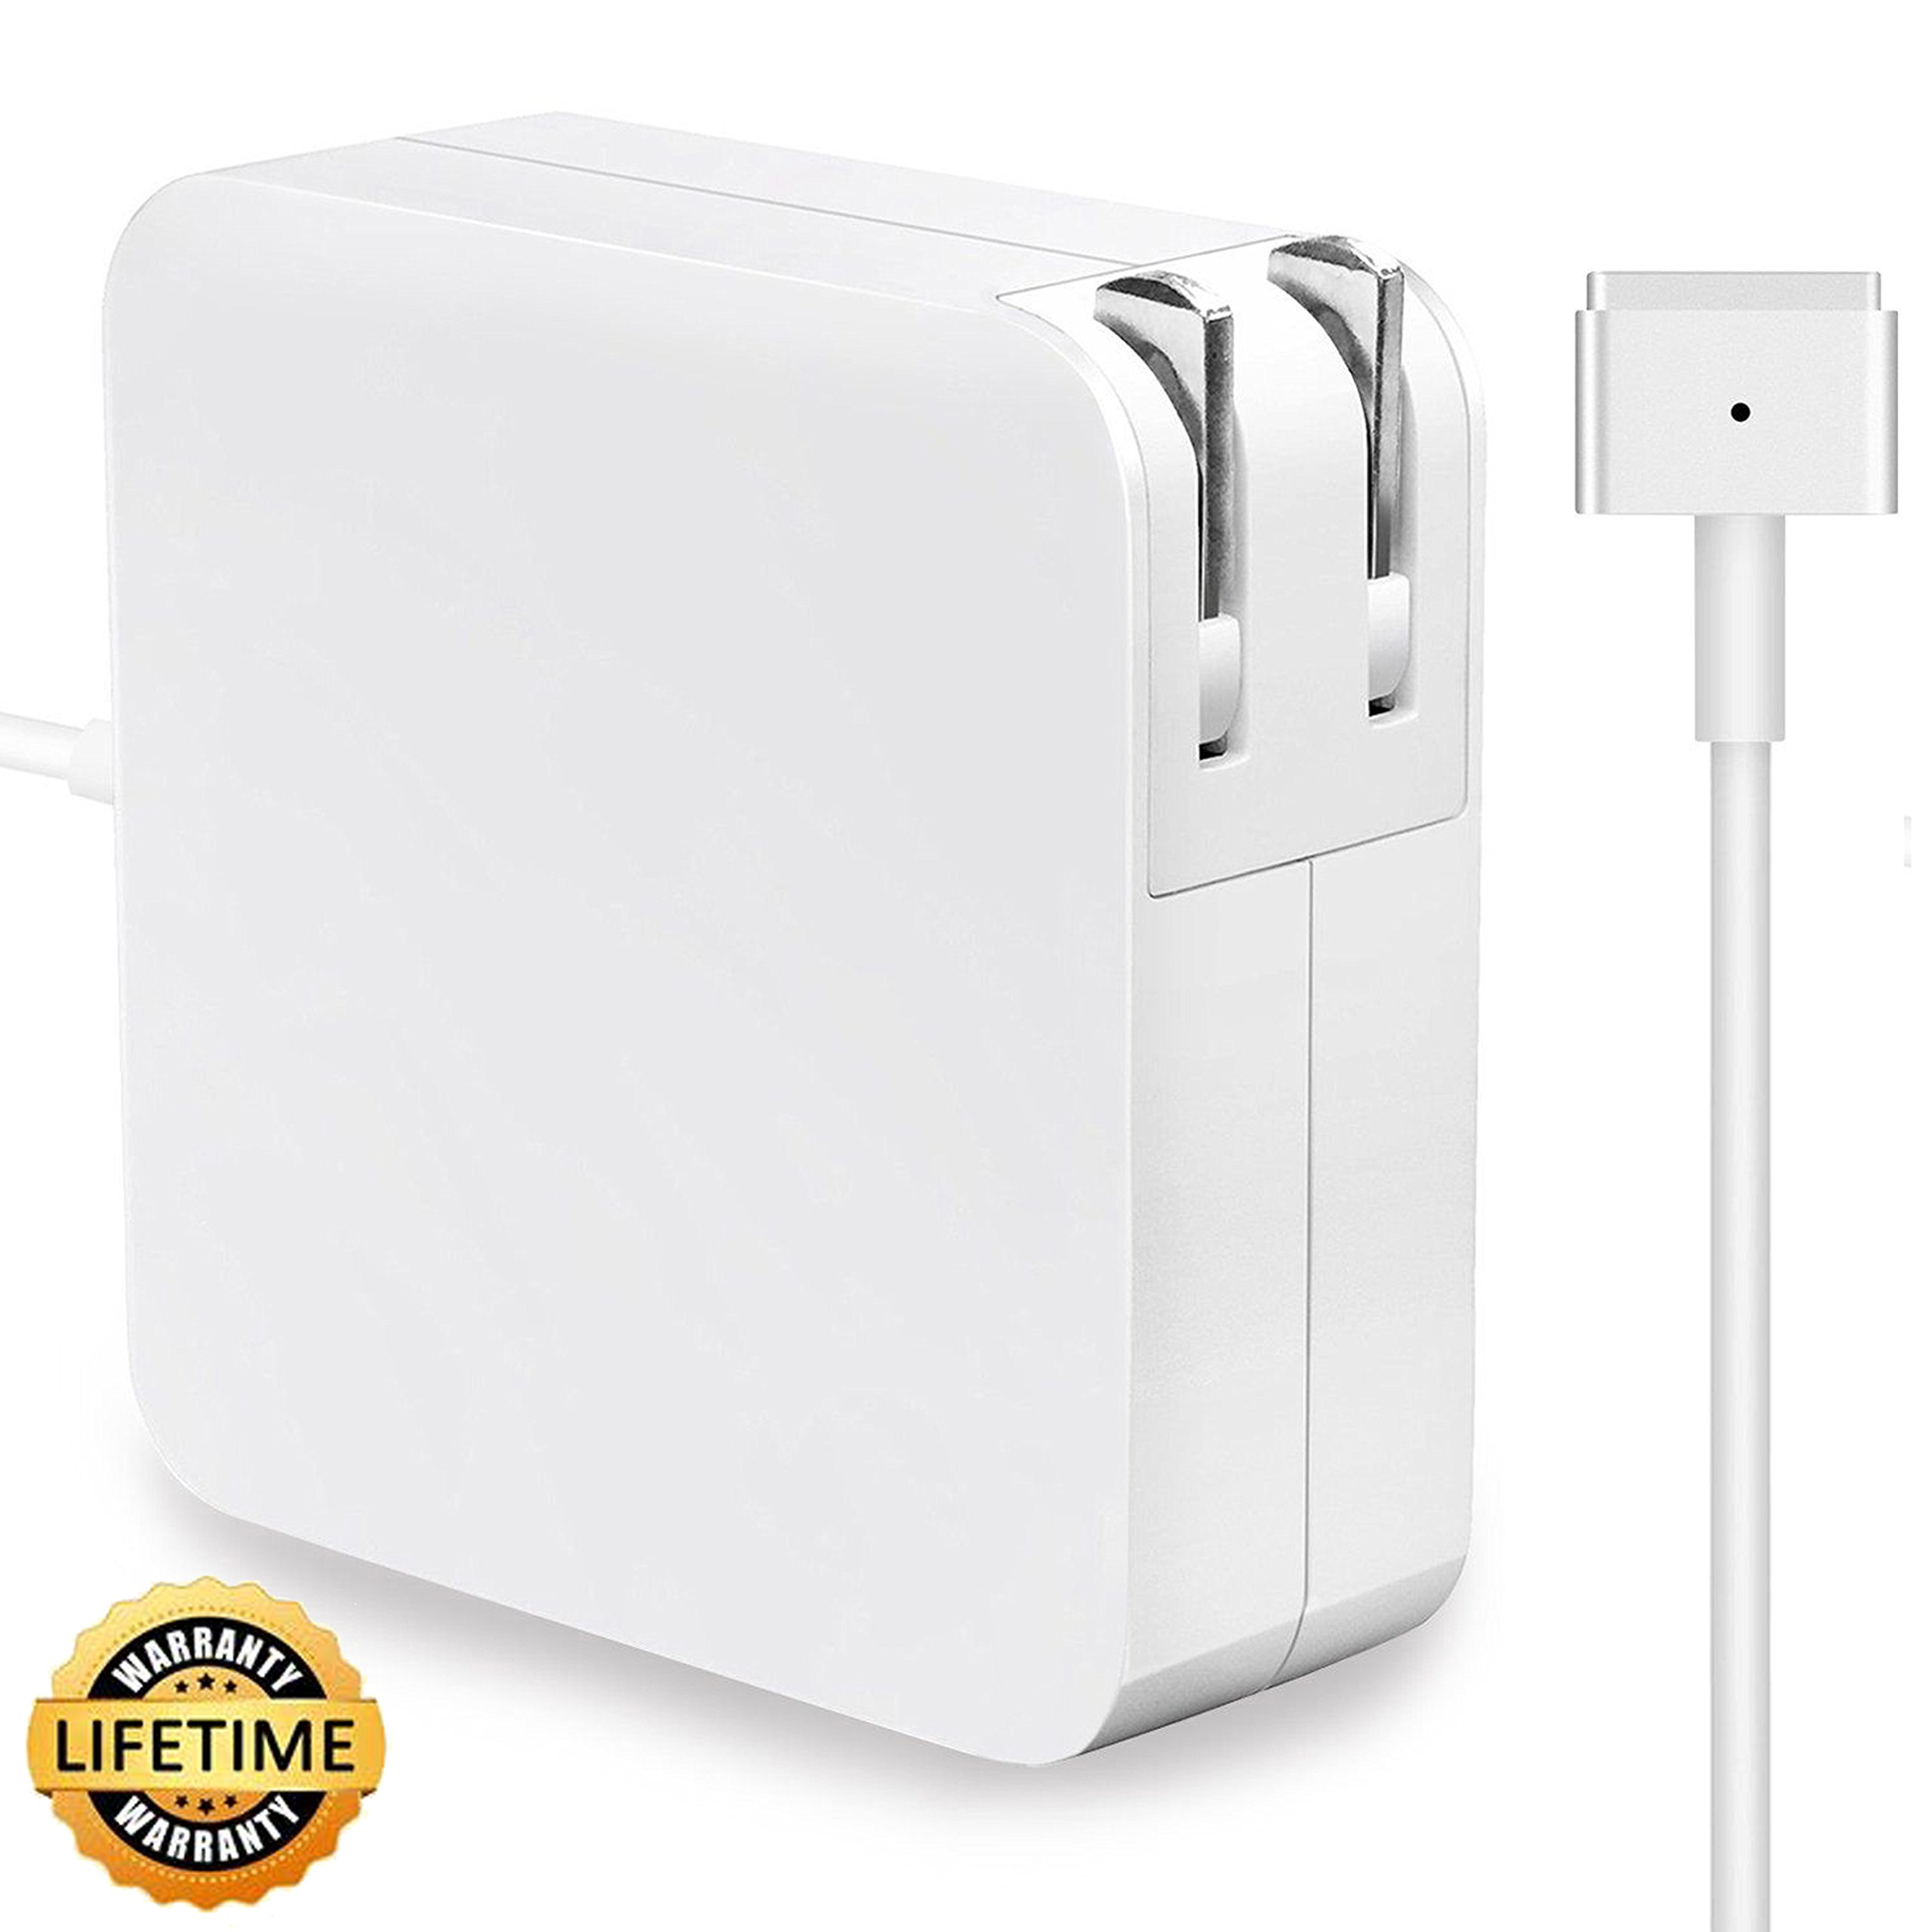 MacBook pro Charger, and Compatible with 45W, Aonear 60W Magsafe 2 T-Tip Replacement Adapter for 13 inch MacBook Pro Charger- After Late 2012 by aonear (Image #1)